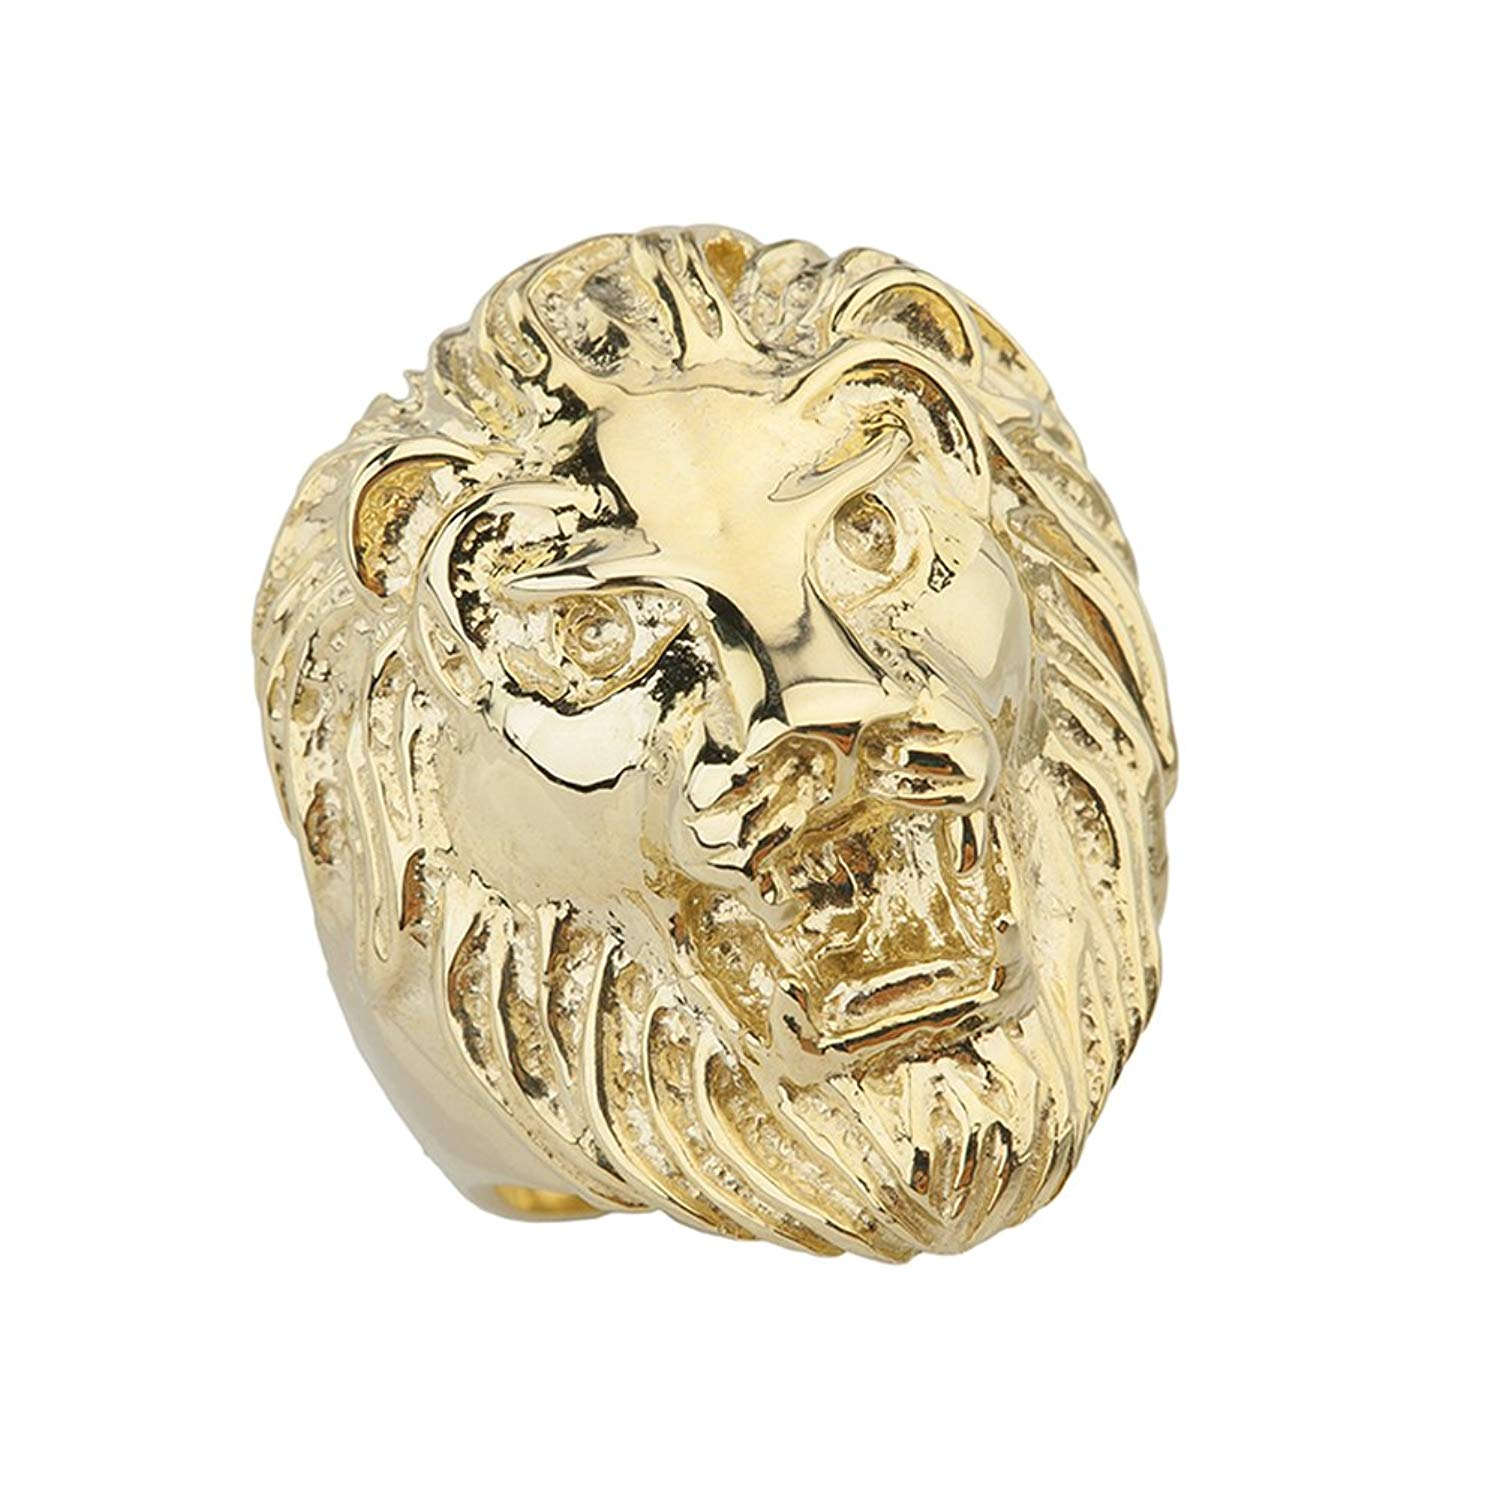 5106bad84 Get Quotations · Fine Roaring Lion's Head Ring in Solid 14k Yellow Gold